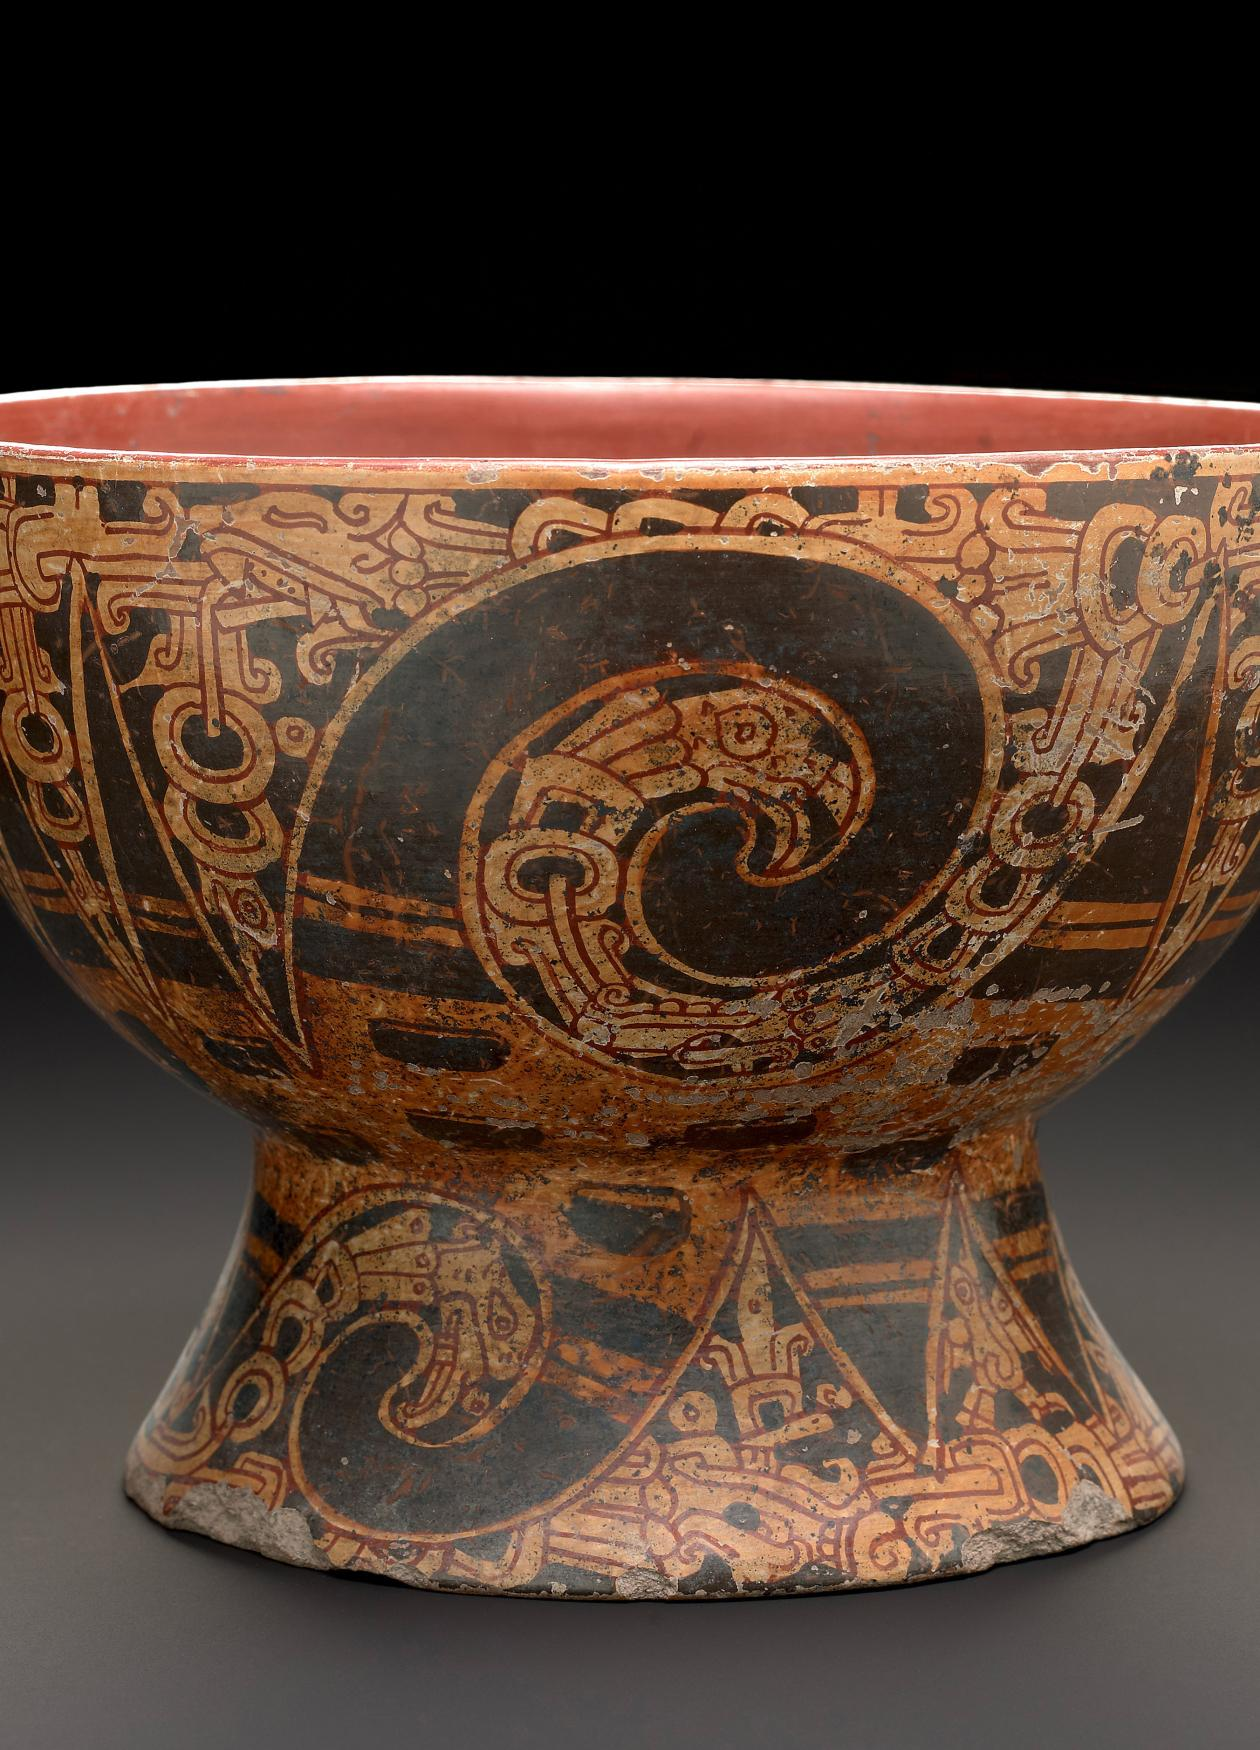 Photo of a Mexican ceremonial goblet from the age of the Aztecs.